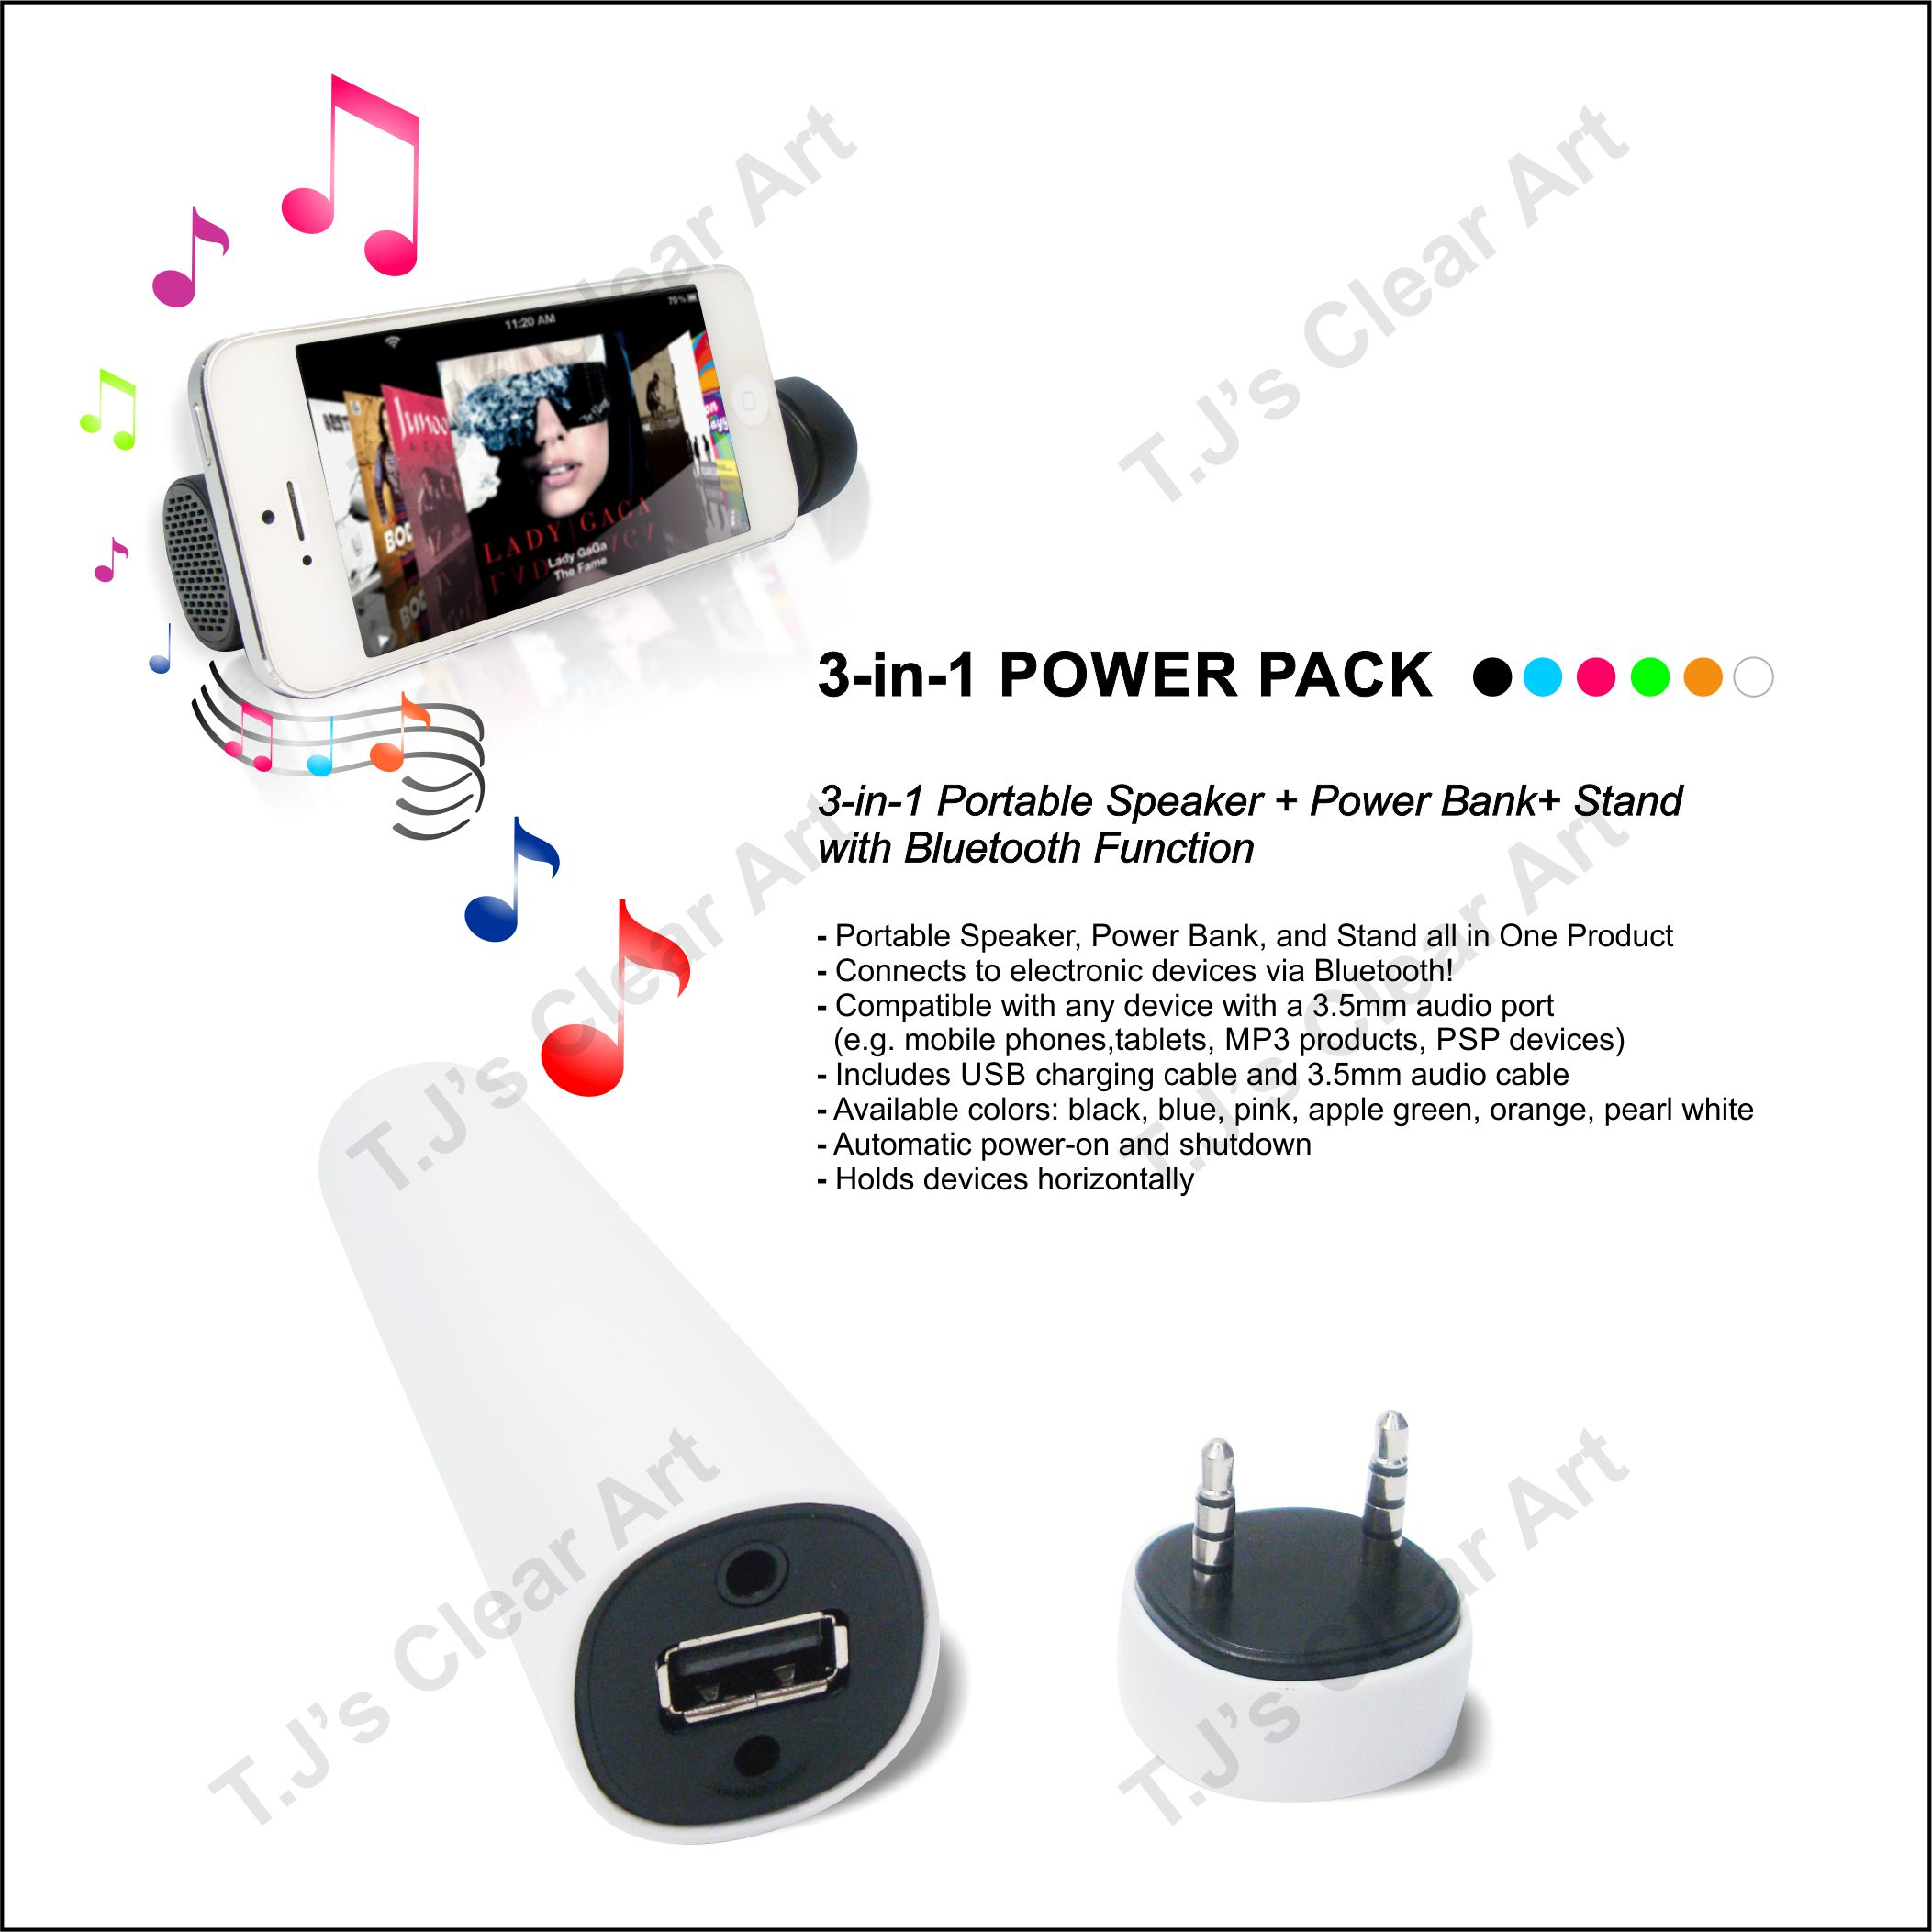 POWER PACK 1 (watermark).jpg